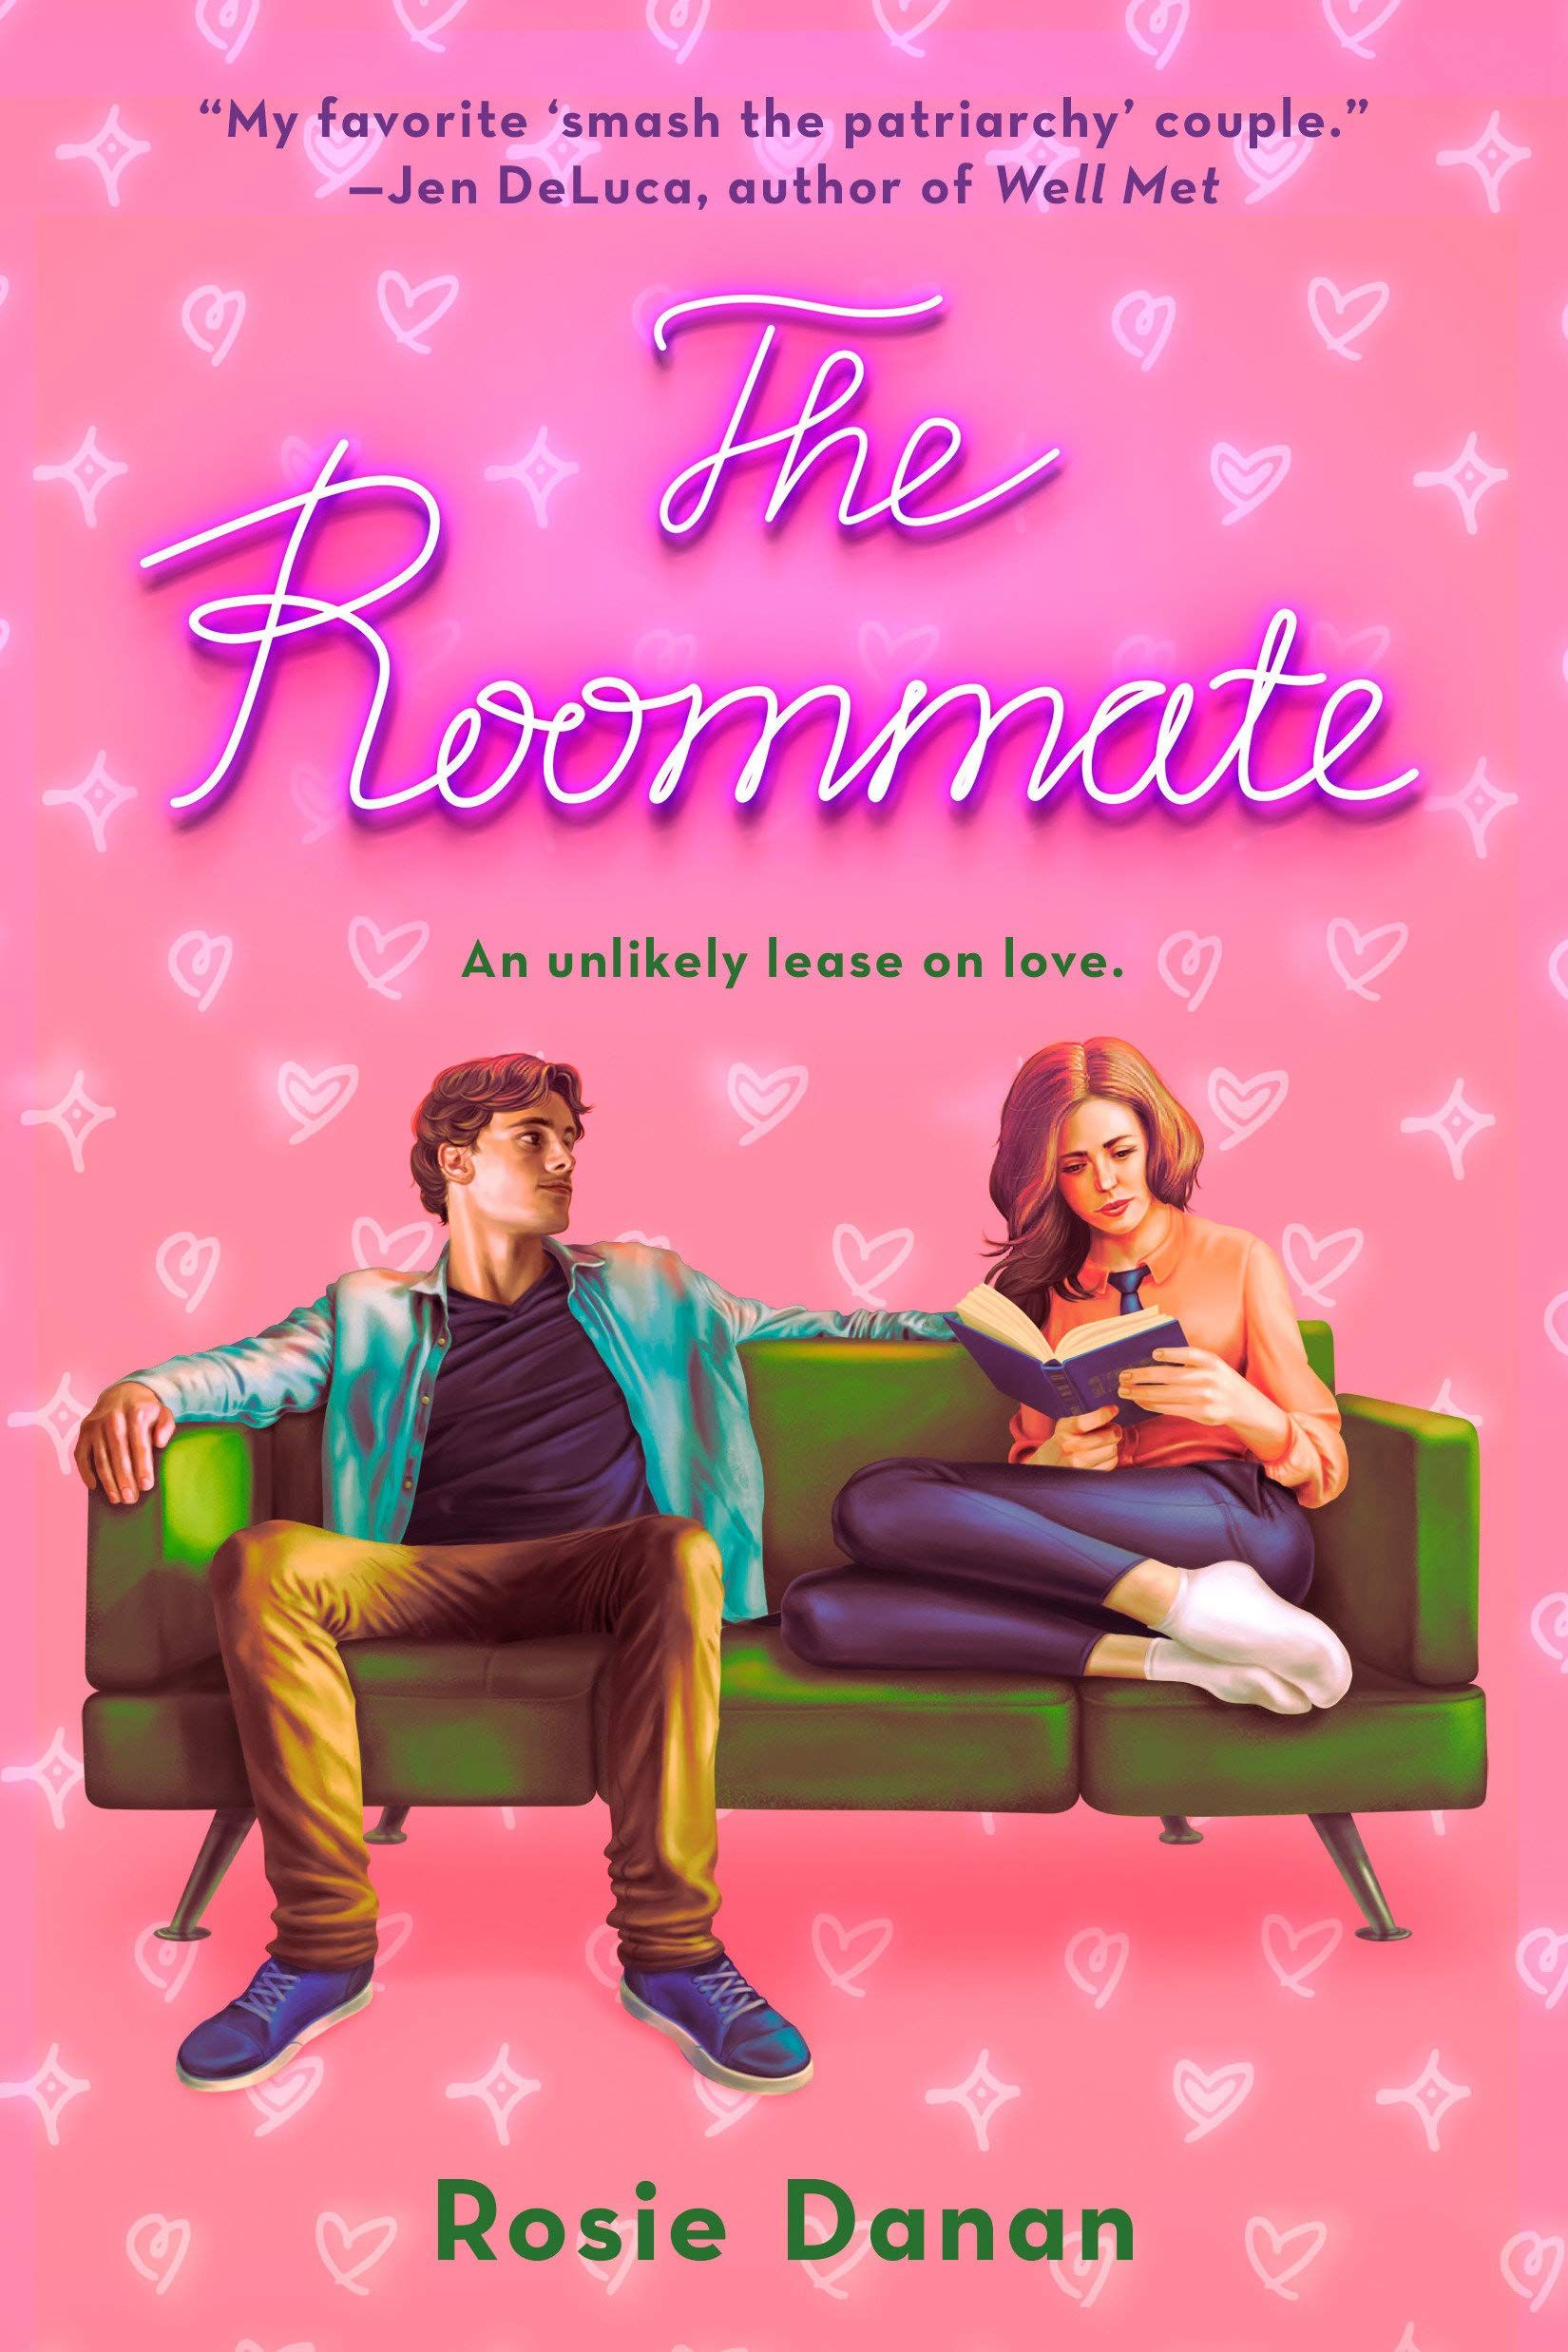 Pdf The Roommate By Rosie Danan New Romance Books Romance Books Roommate